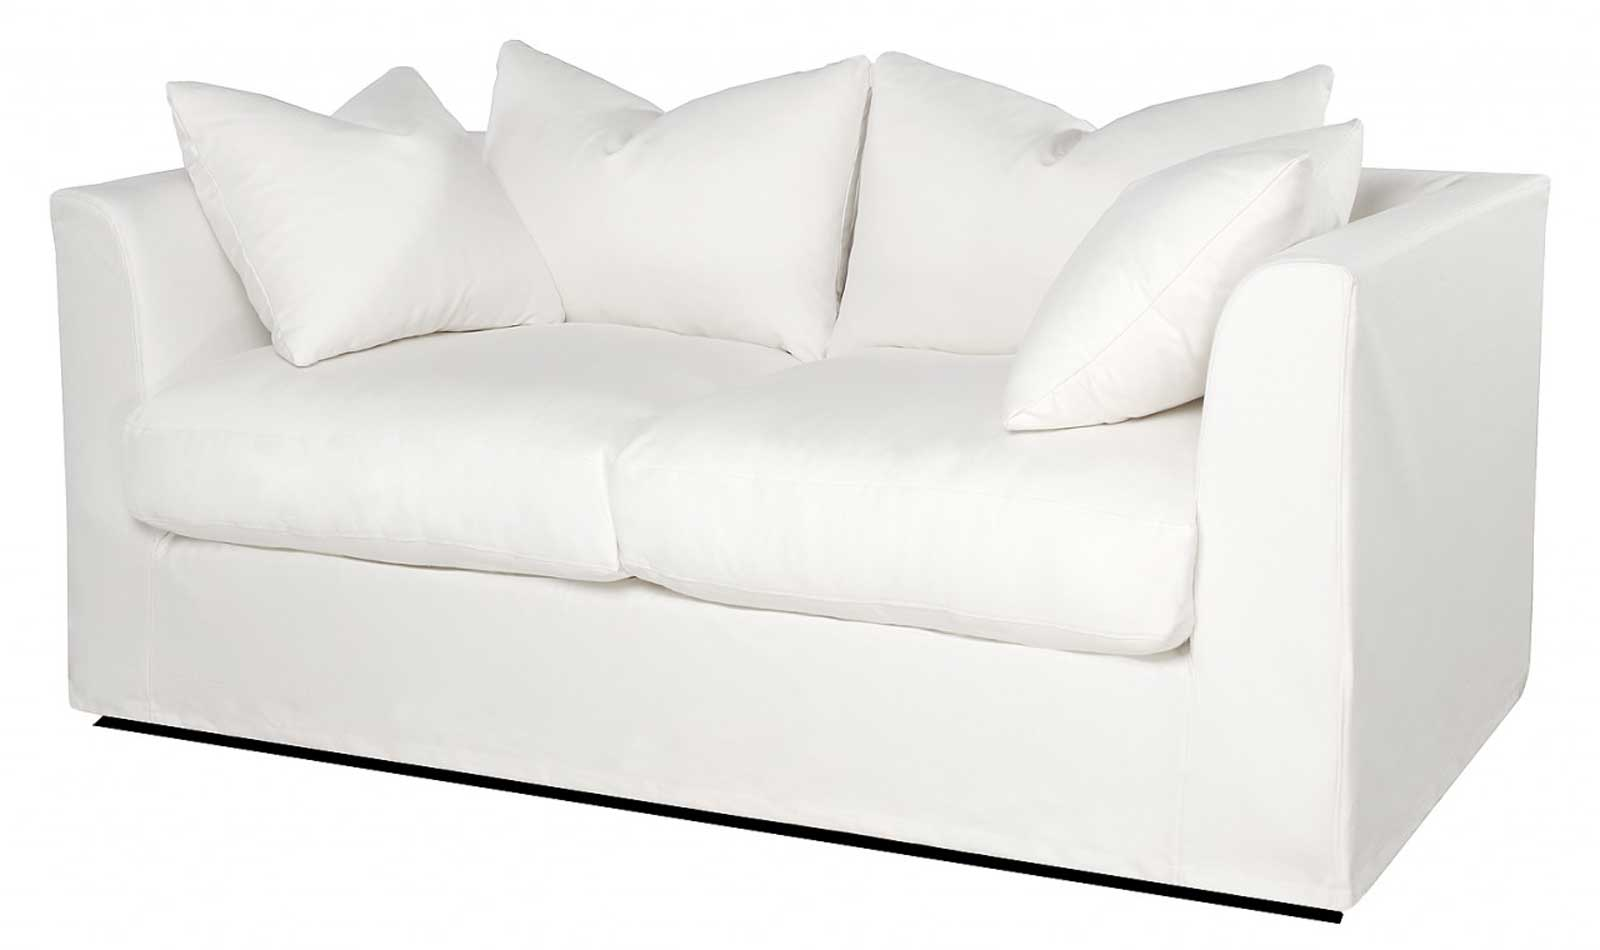 Slipcovered sofa bed sofa beds Sleeper sofa covers